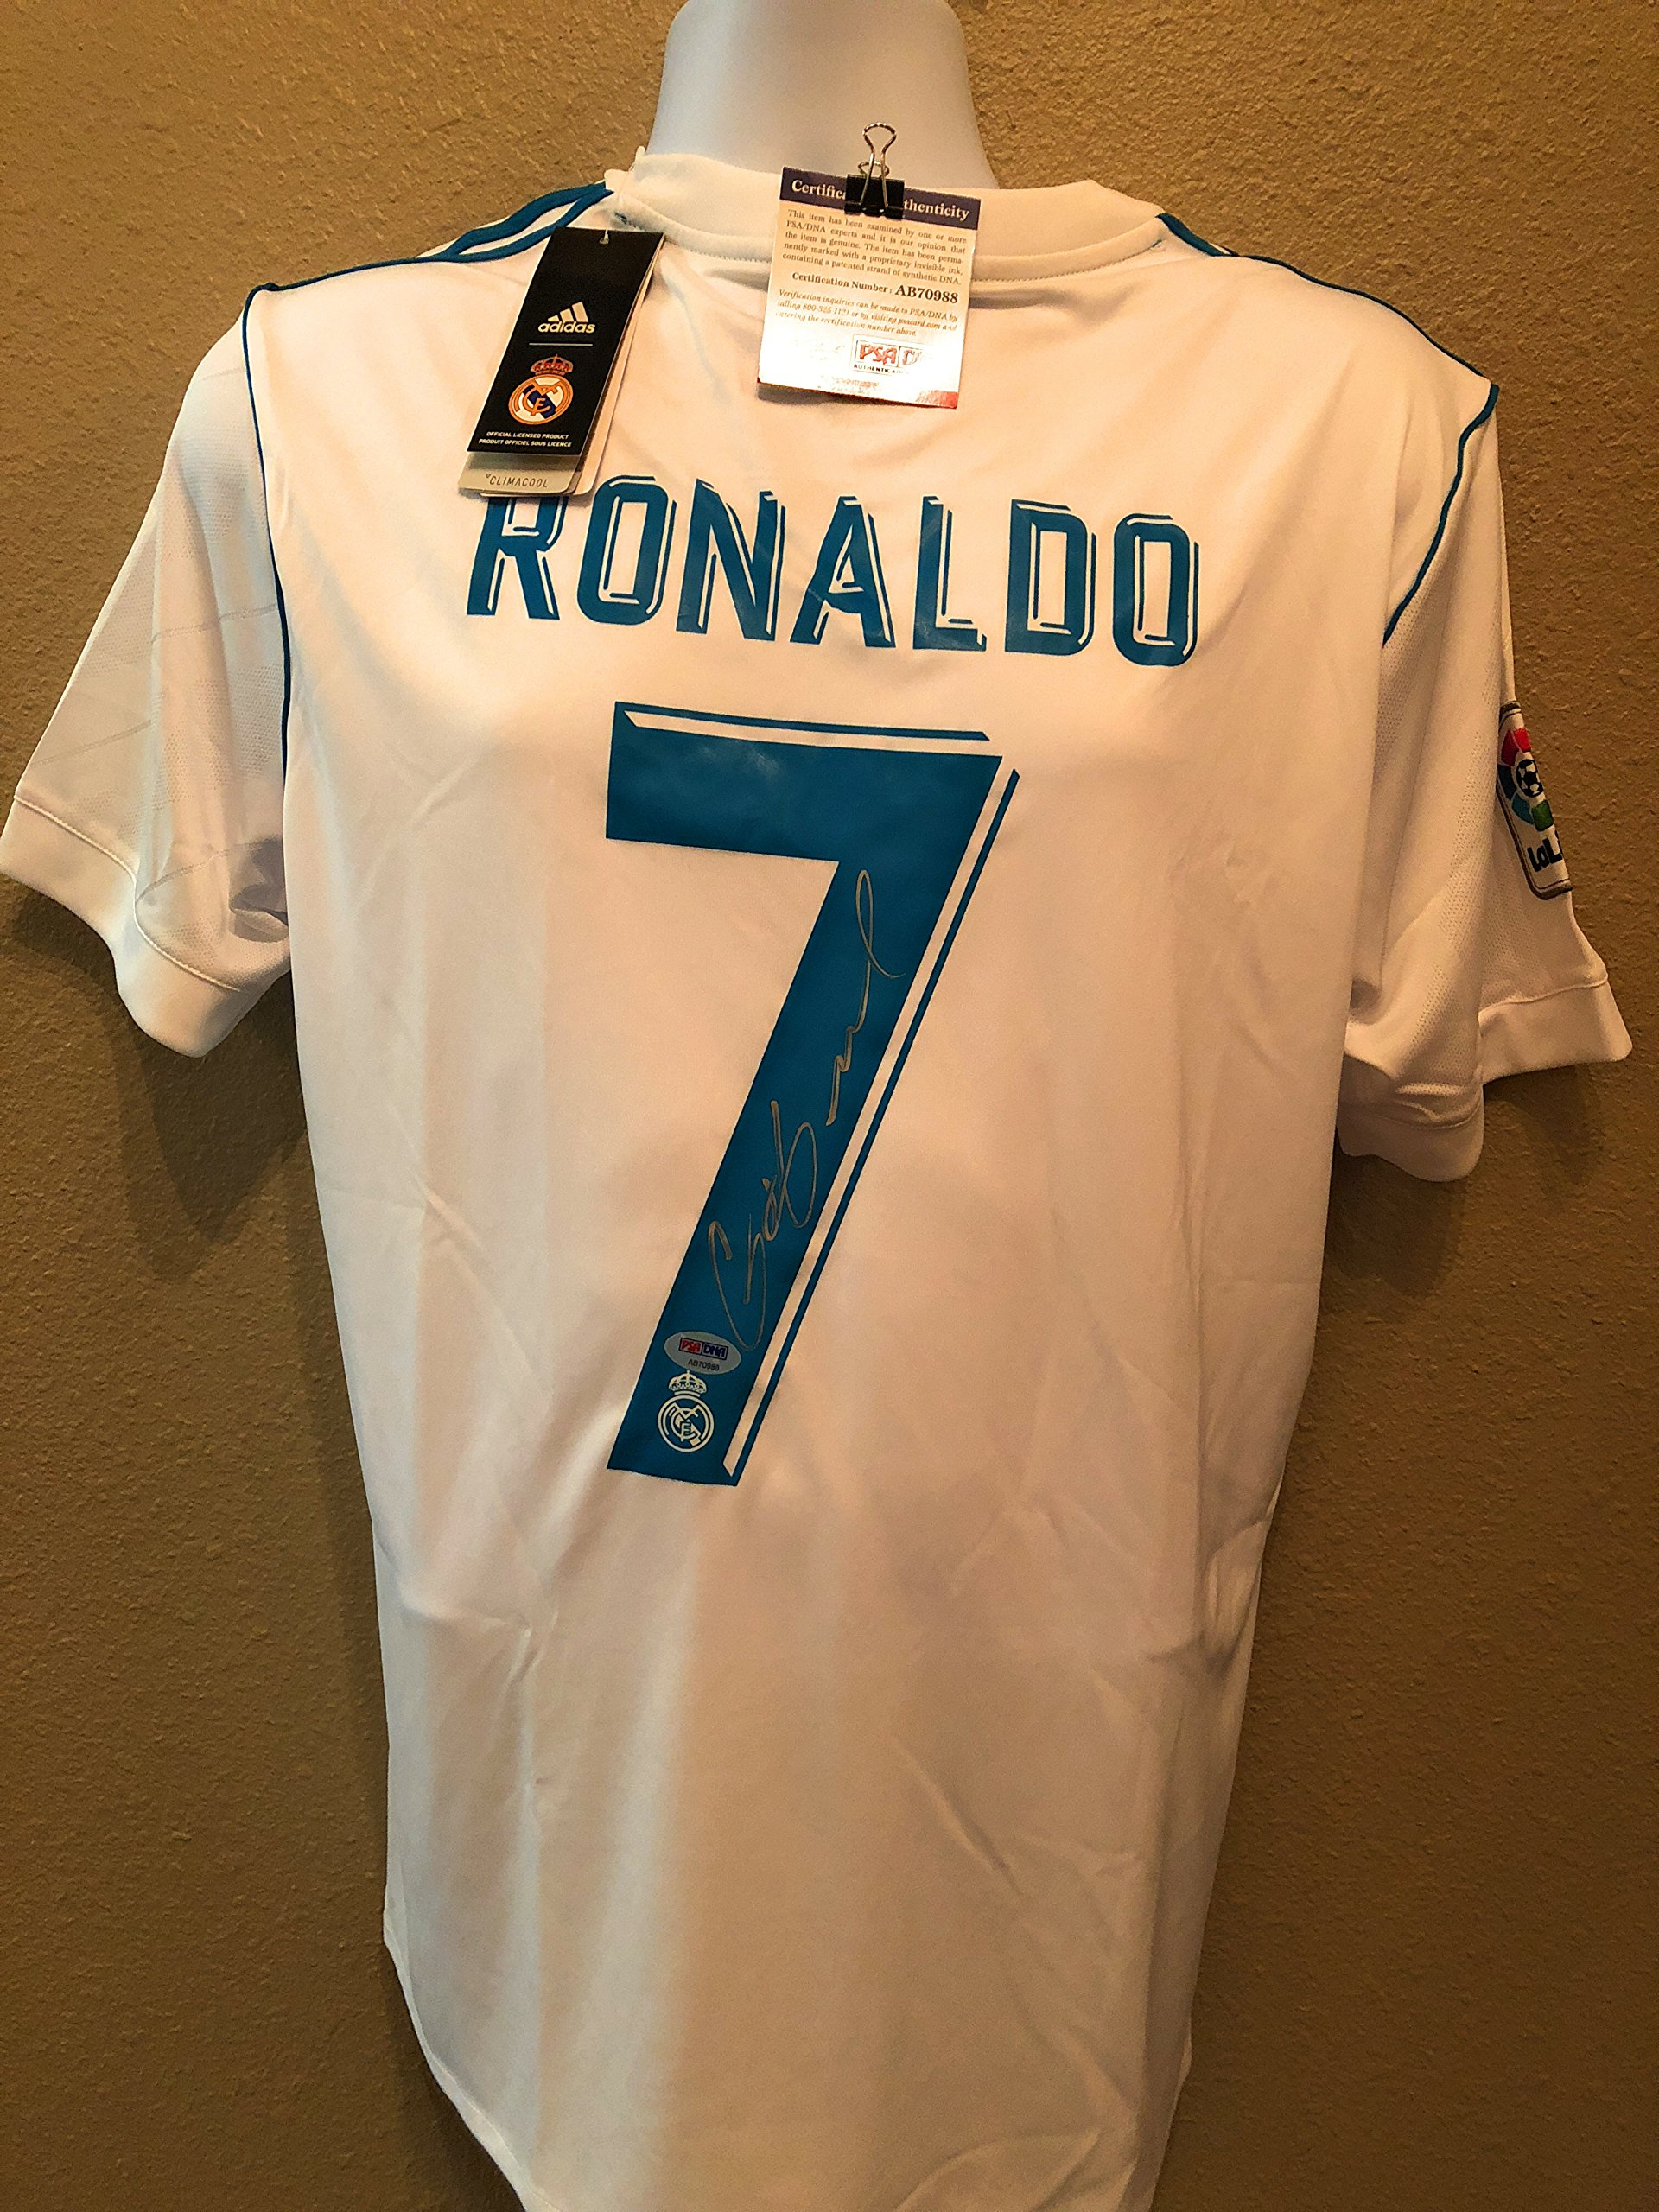 Cristiano Ronaldo Fly Emirates Signed Autograph MLS Soccer Jersey PSA/DNA Certified